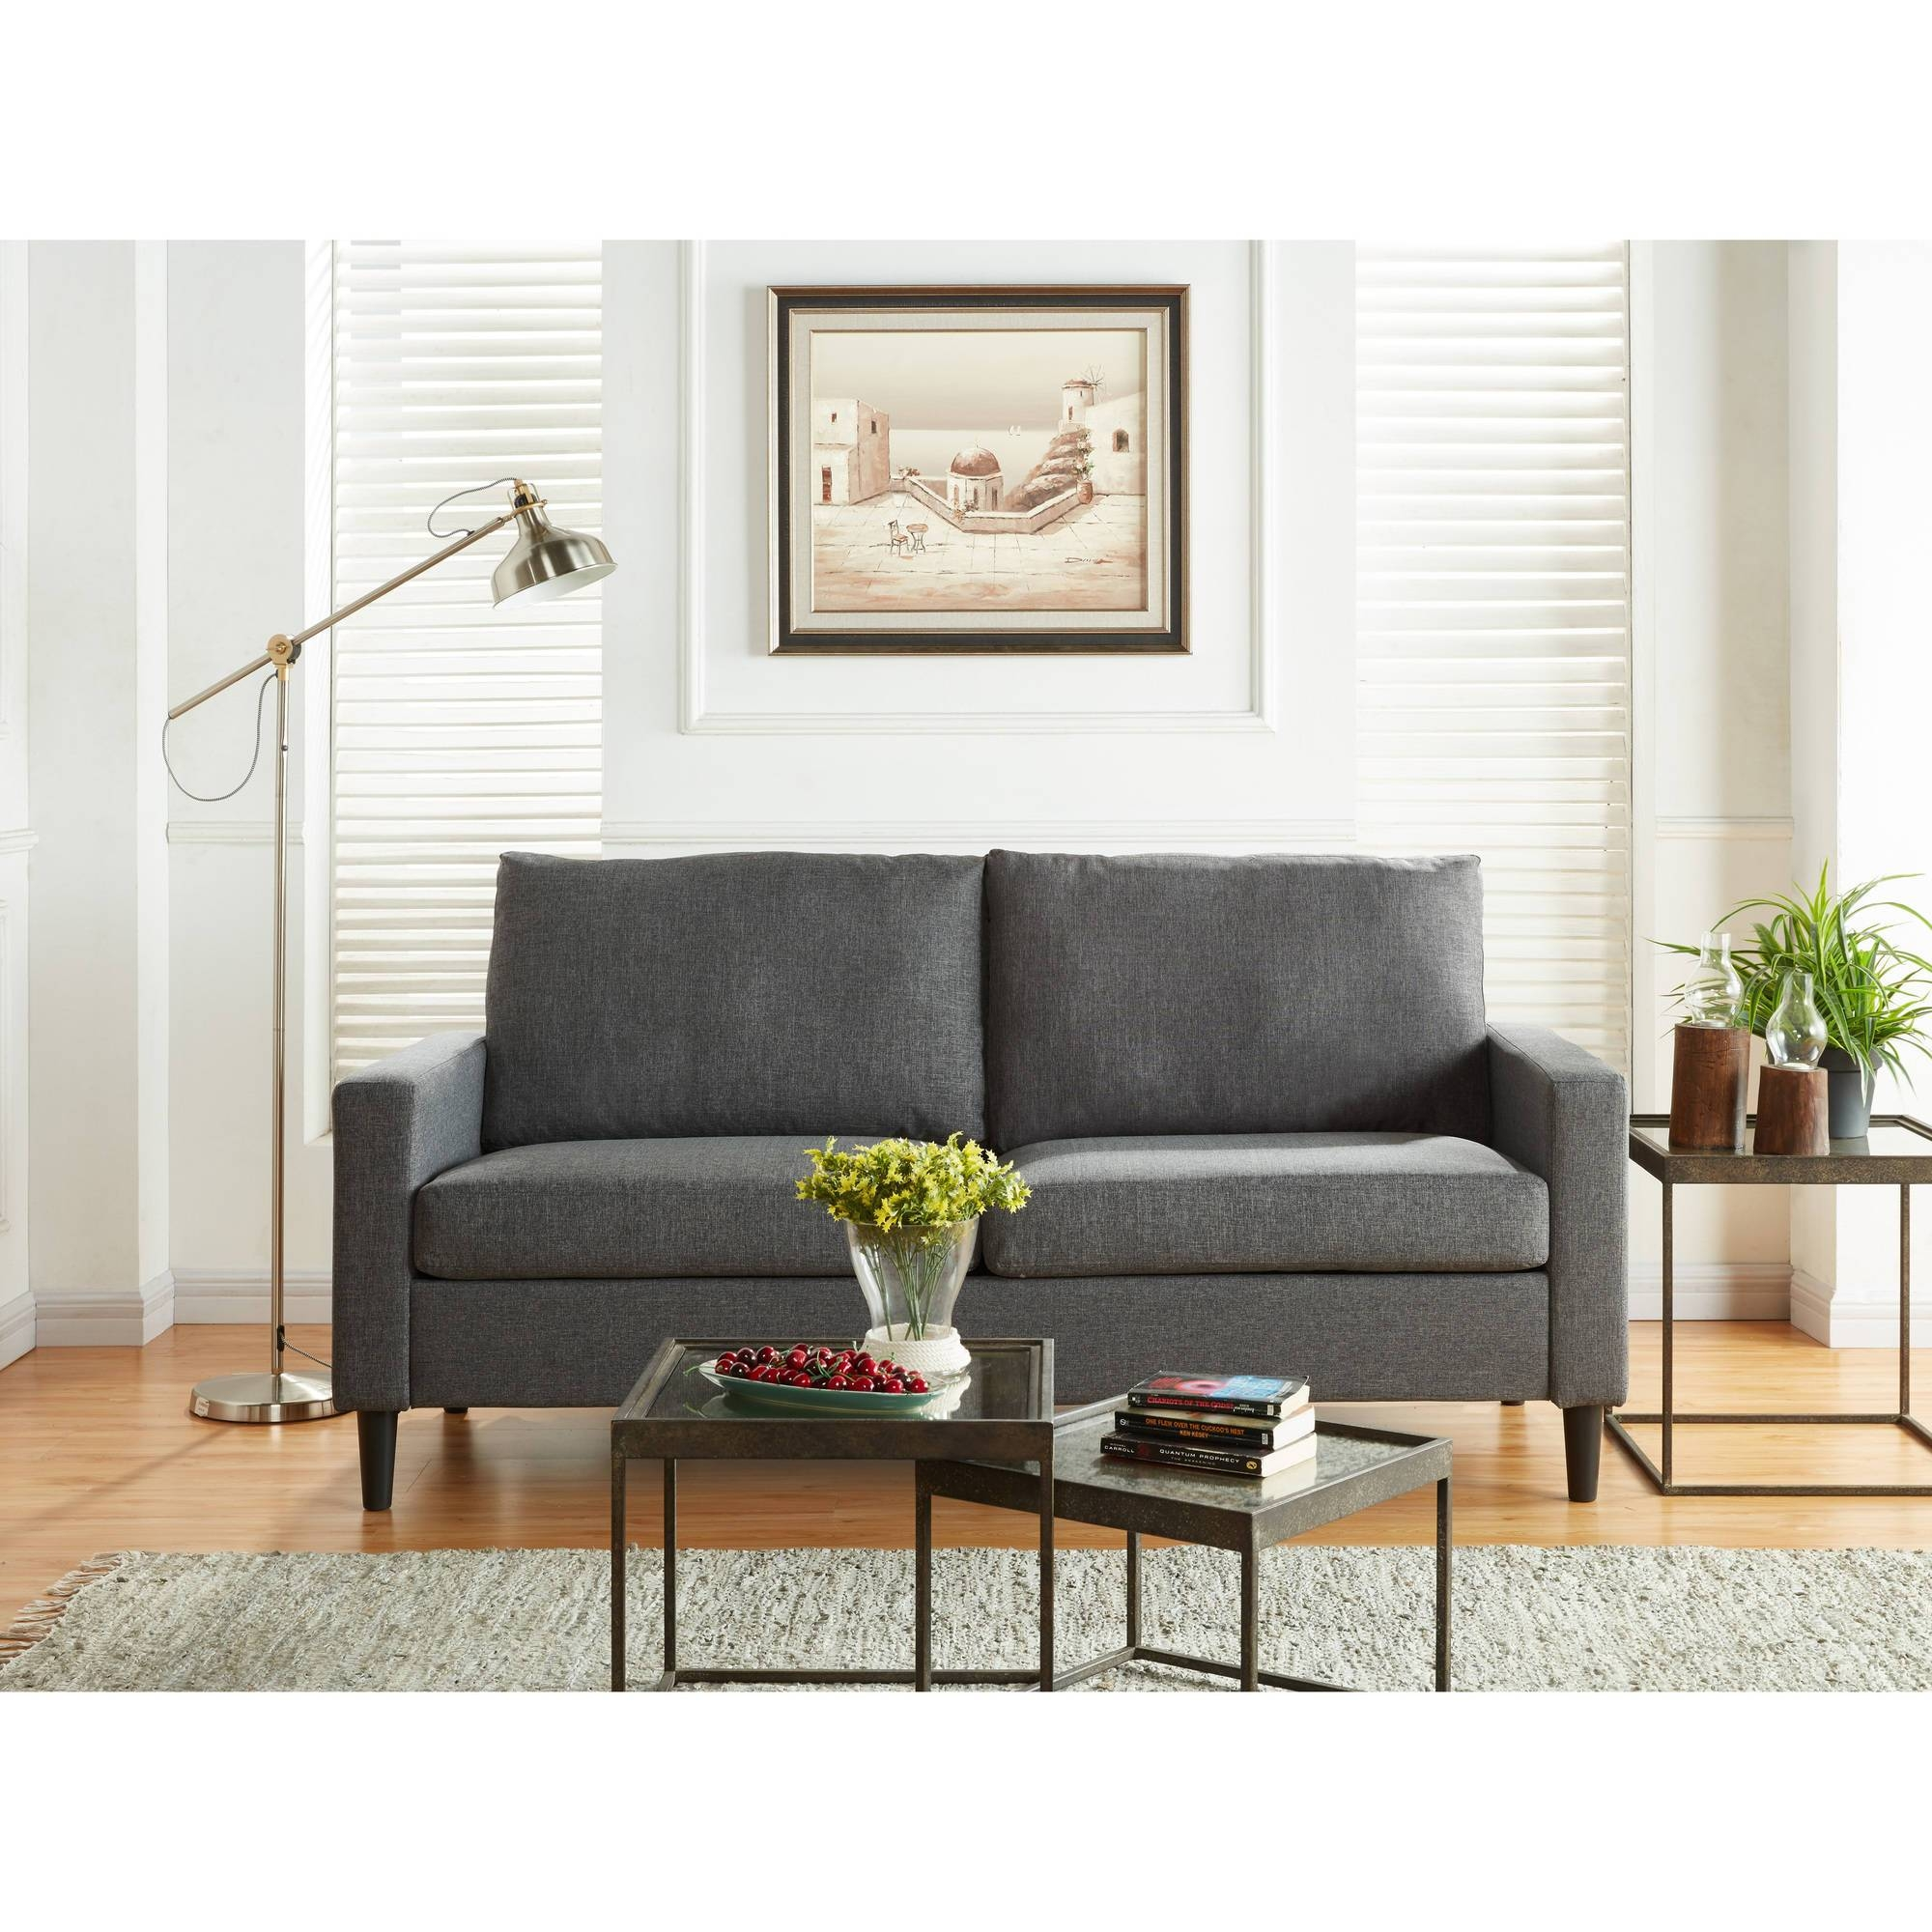 Sectional Sleeper Sofas In Apartment Sofa Sectional (Image 21 of 30)